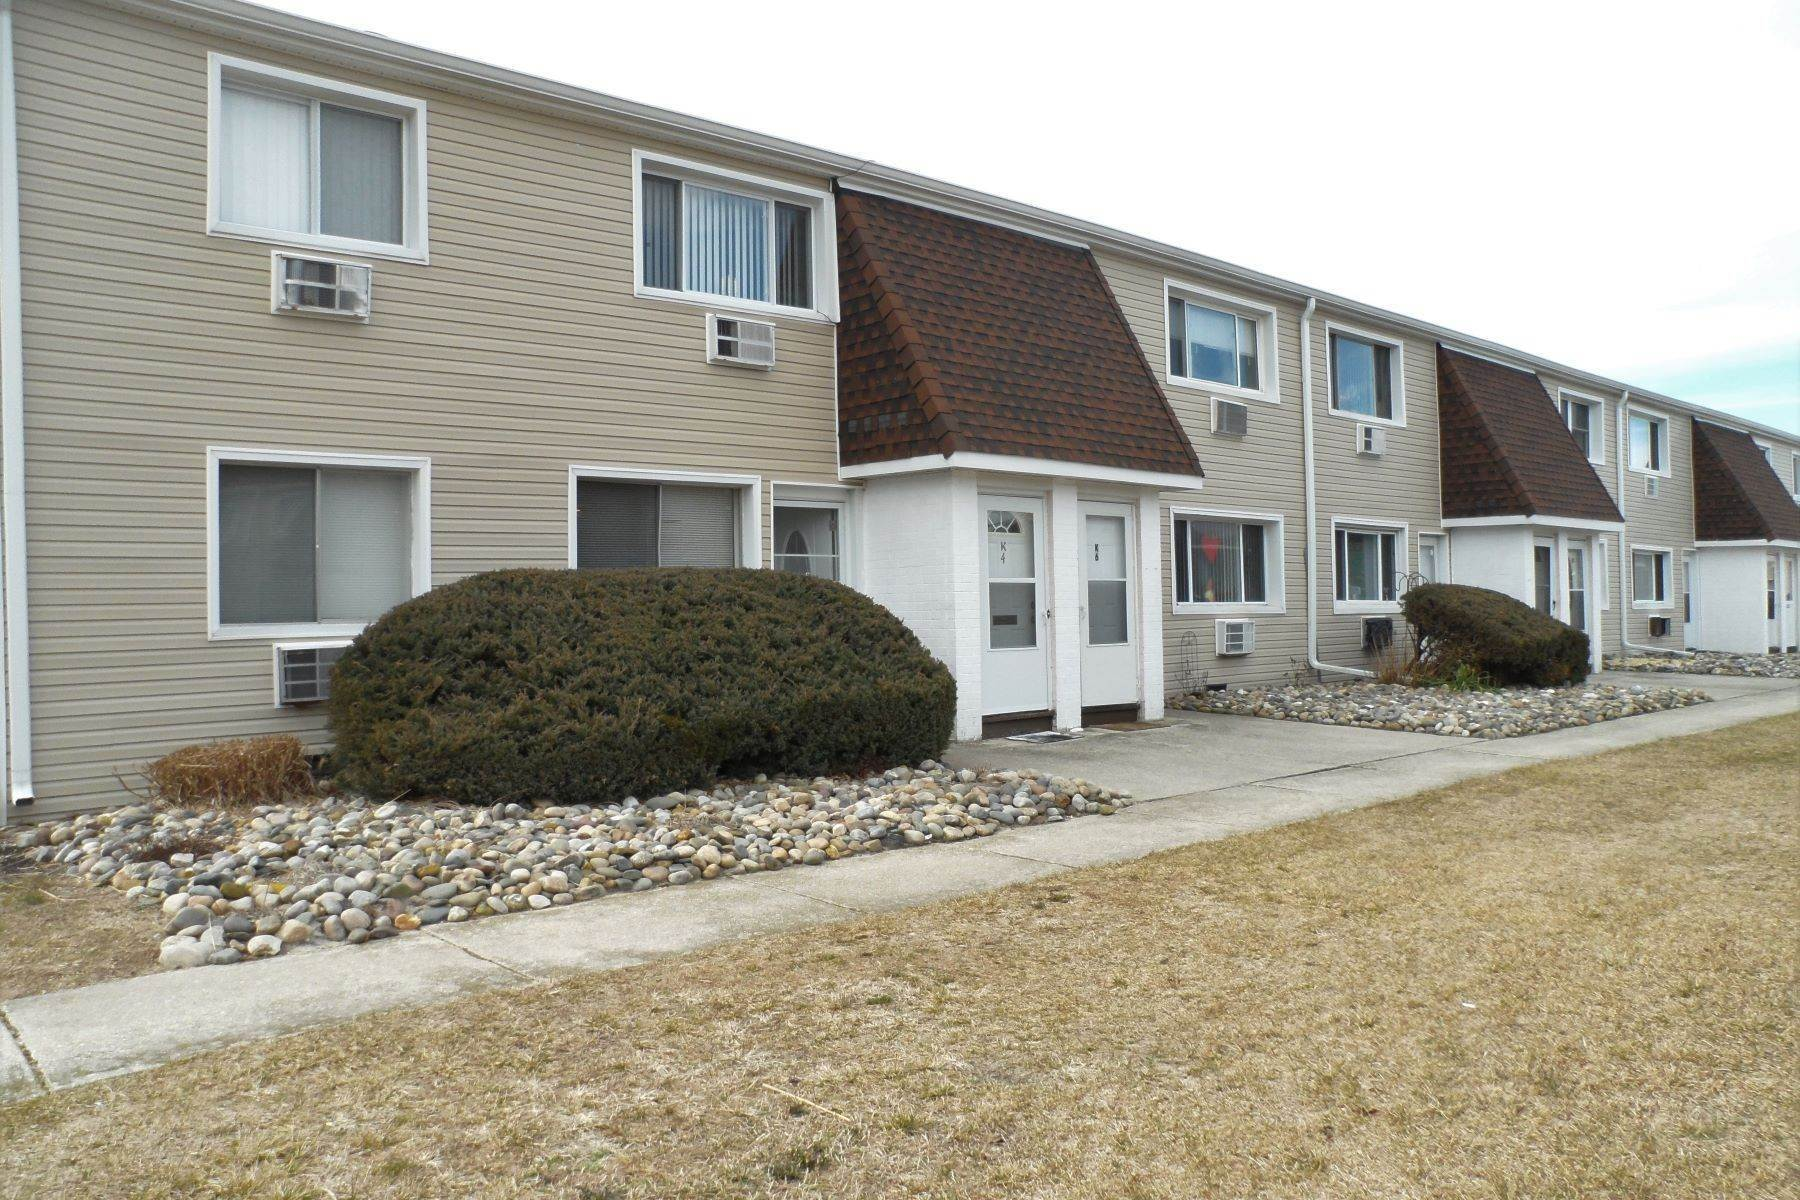 Condominiums for Sale at 4901 Harbor Beach Blvd K6 Brigantine, New Jersey 08203 United States